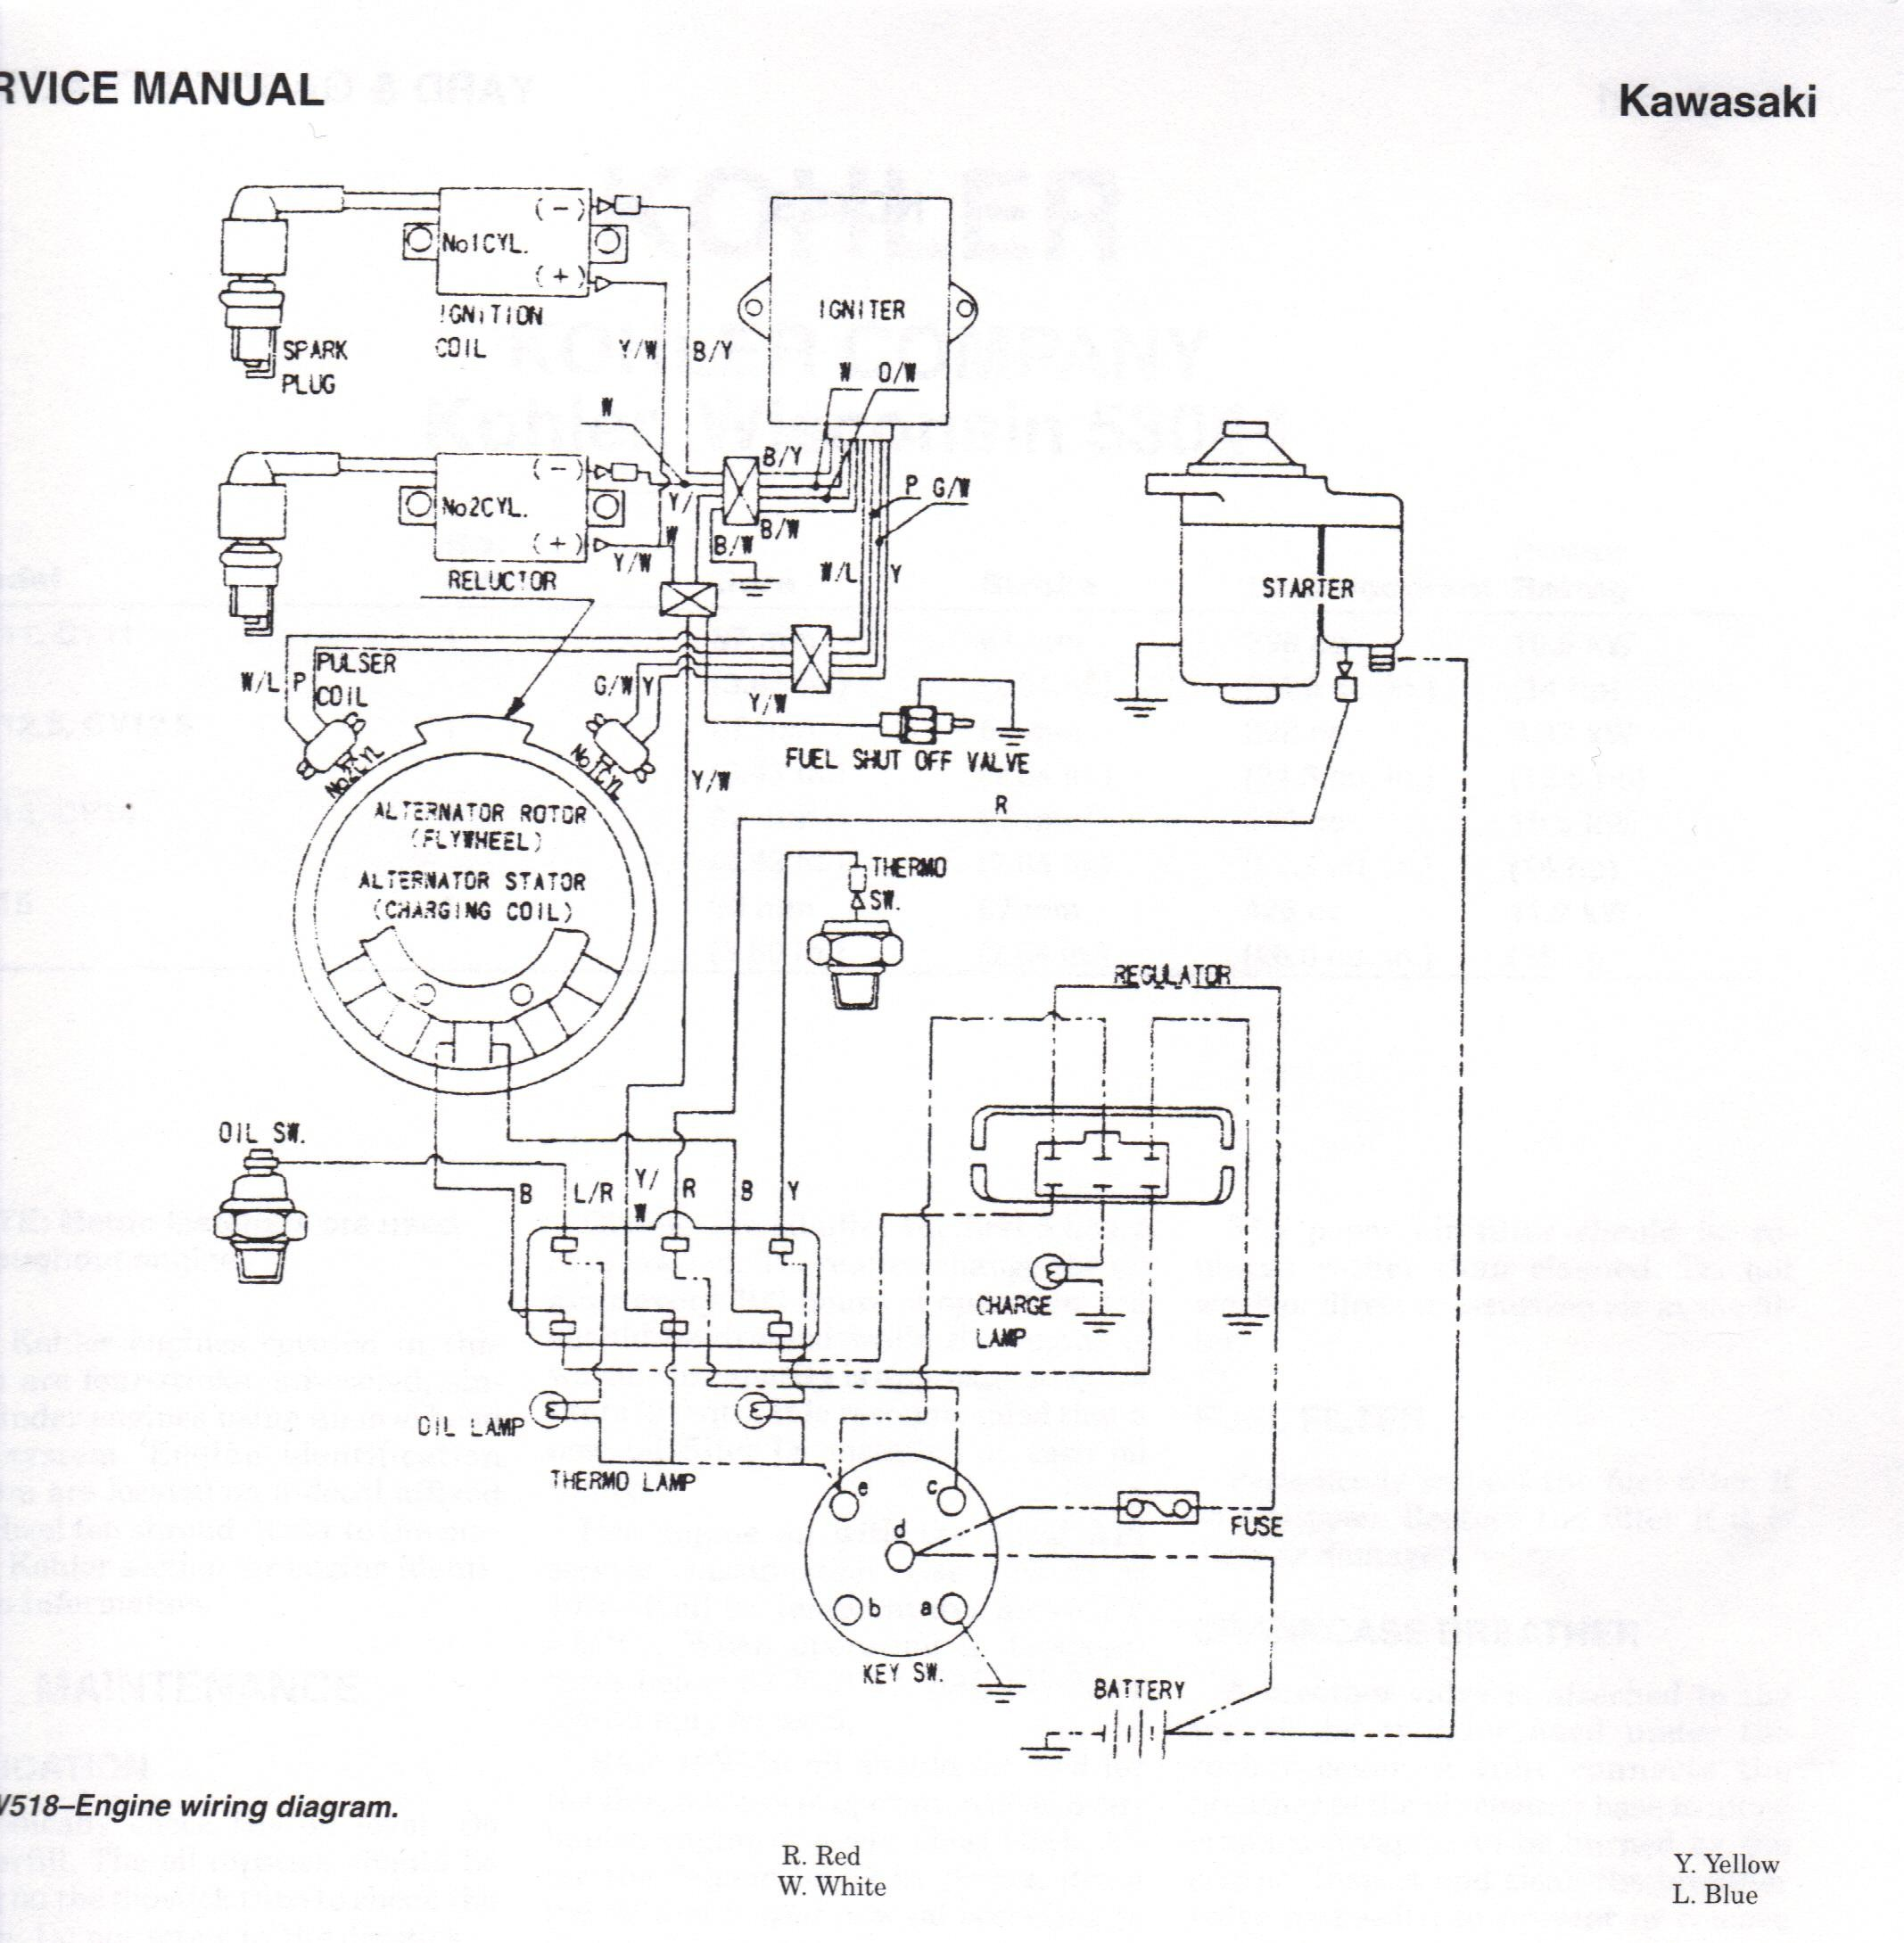 for gator hpx 4x4 wiring diagram